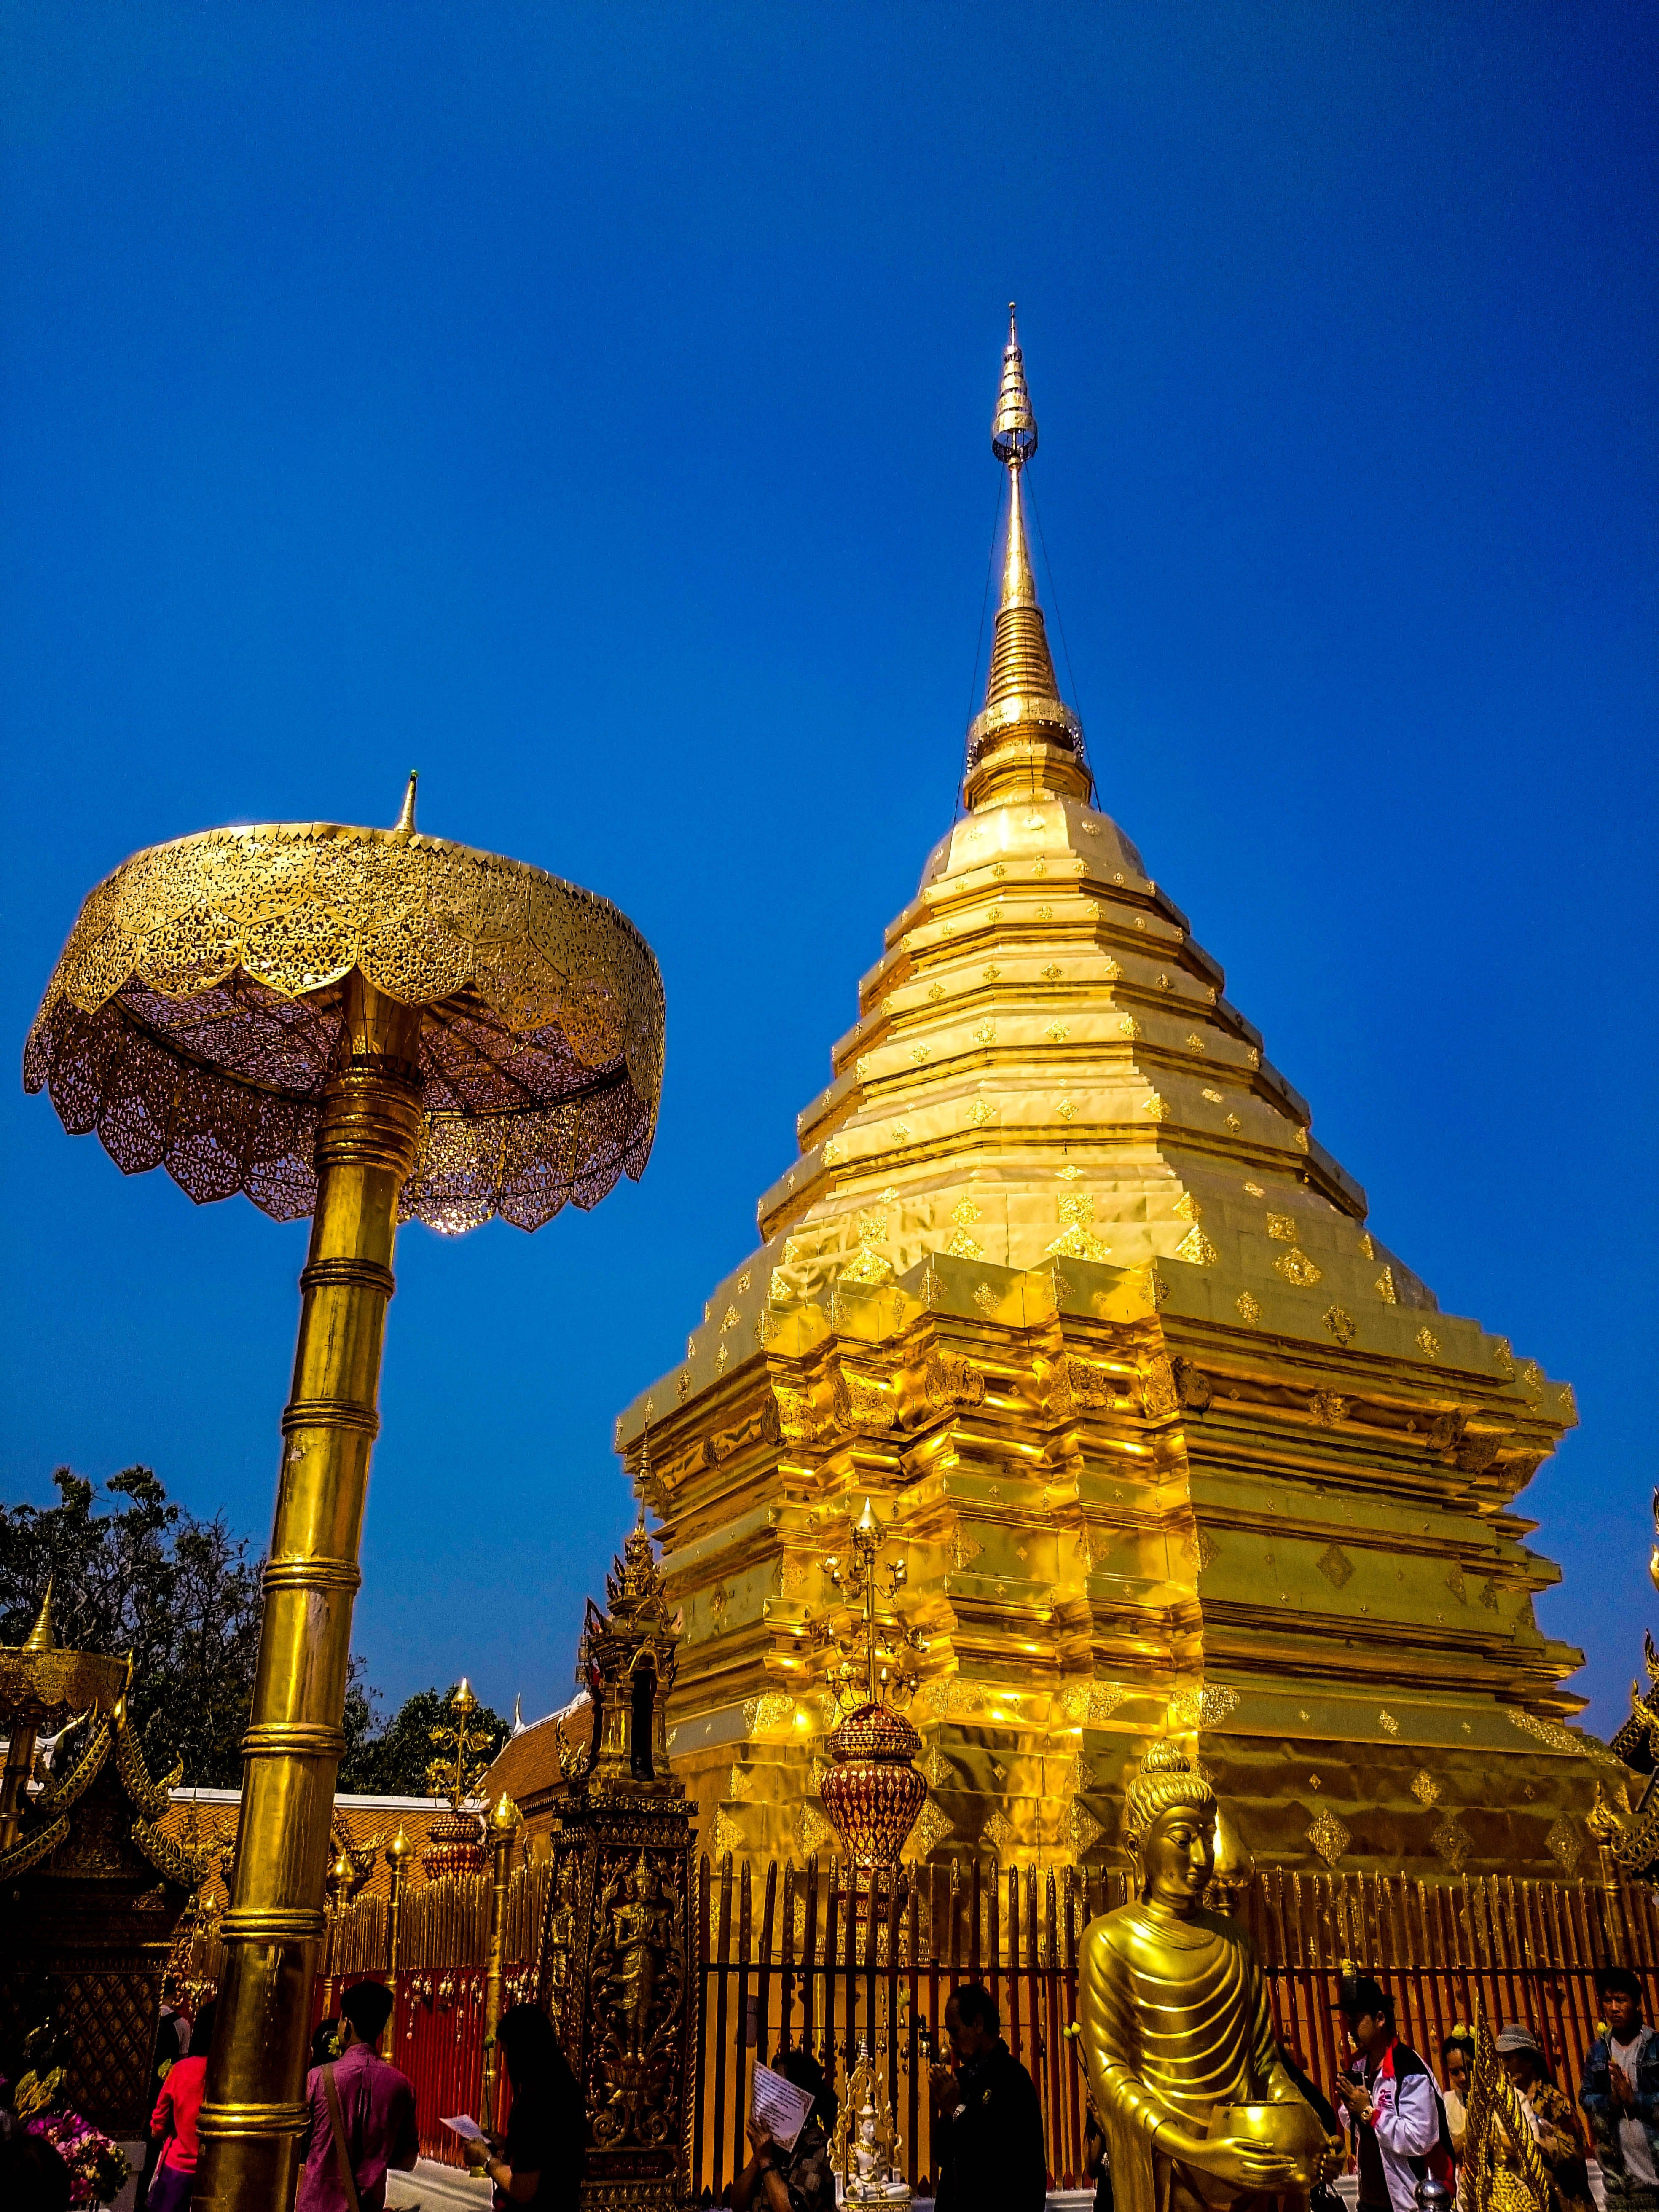 Escape the crazy pace of Bangkok and head north to the charming city of Chiang Mai. The laid-back pace of life here seems at odds with the throngs of tourists visiting the city, yet it somehow manages to retain an air of calm not found in the capital. While this is ...